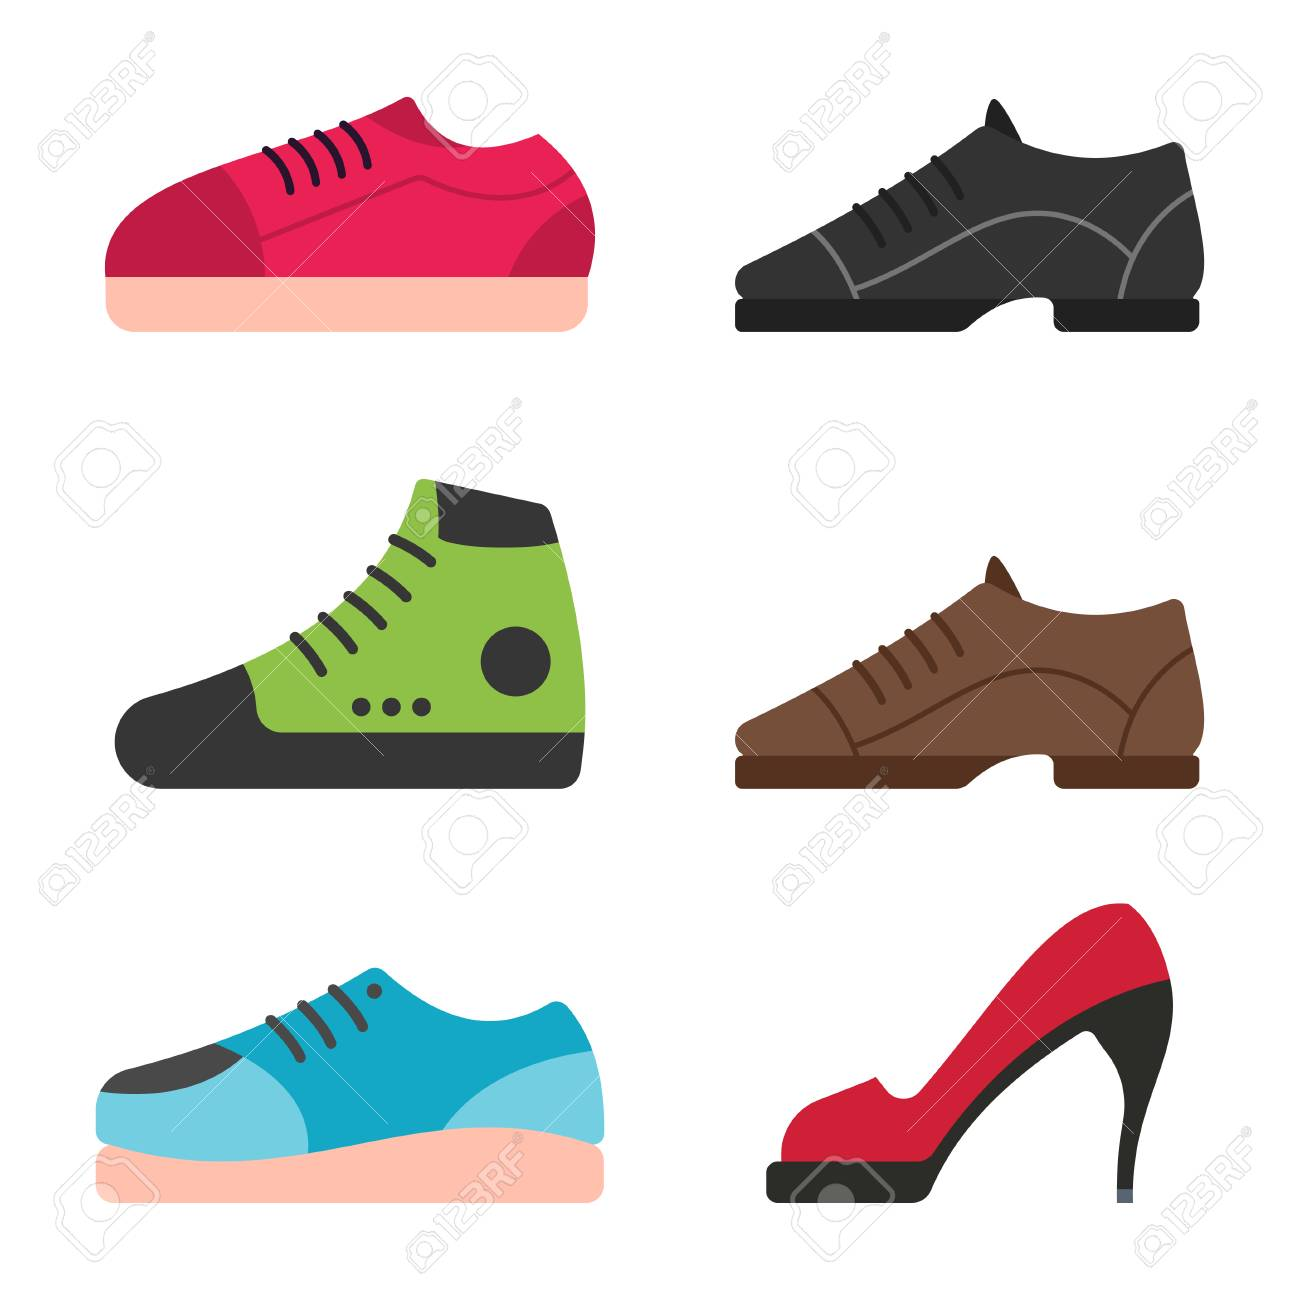 Shoes For Kids Men And Women Set Vector Cartoon Flat Icons Royalty Free Cliparts Vectors And Stock Illustration Image 115569726